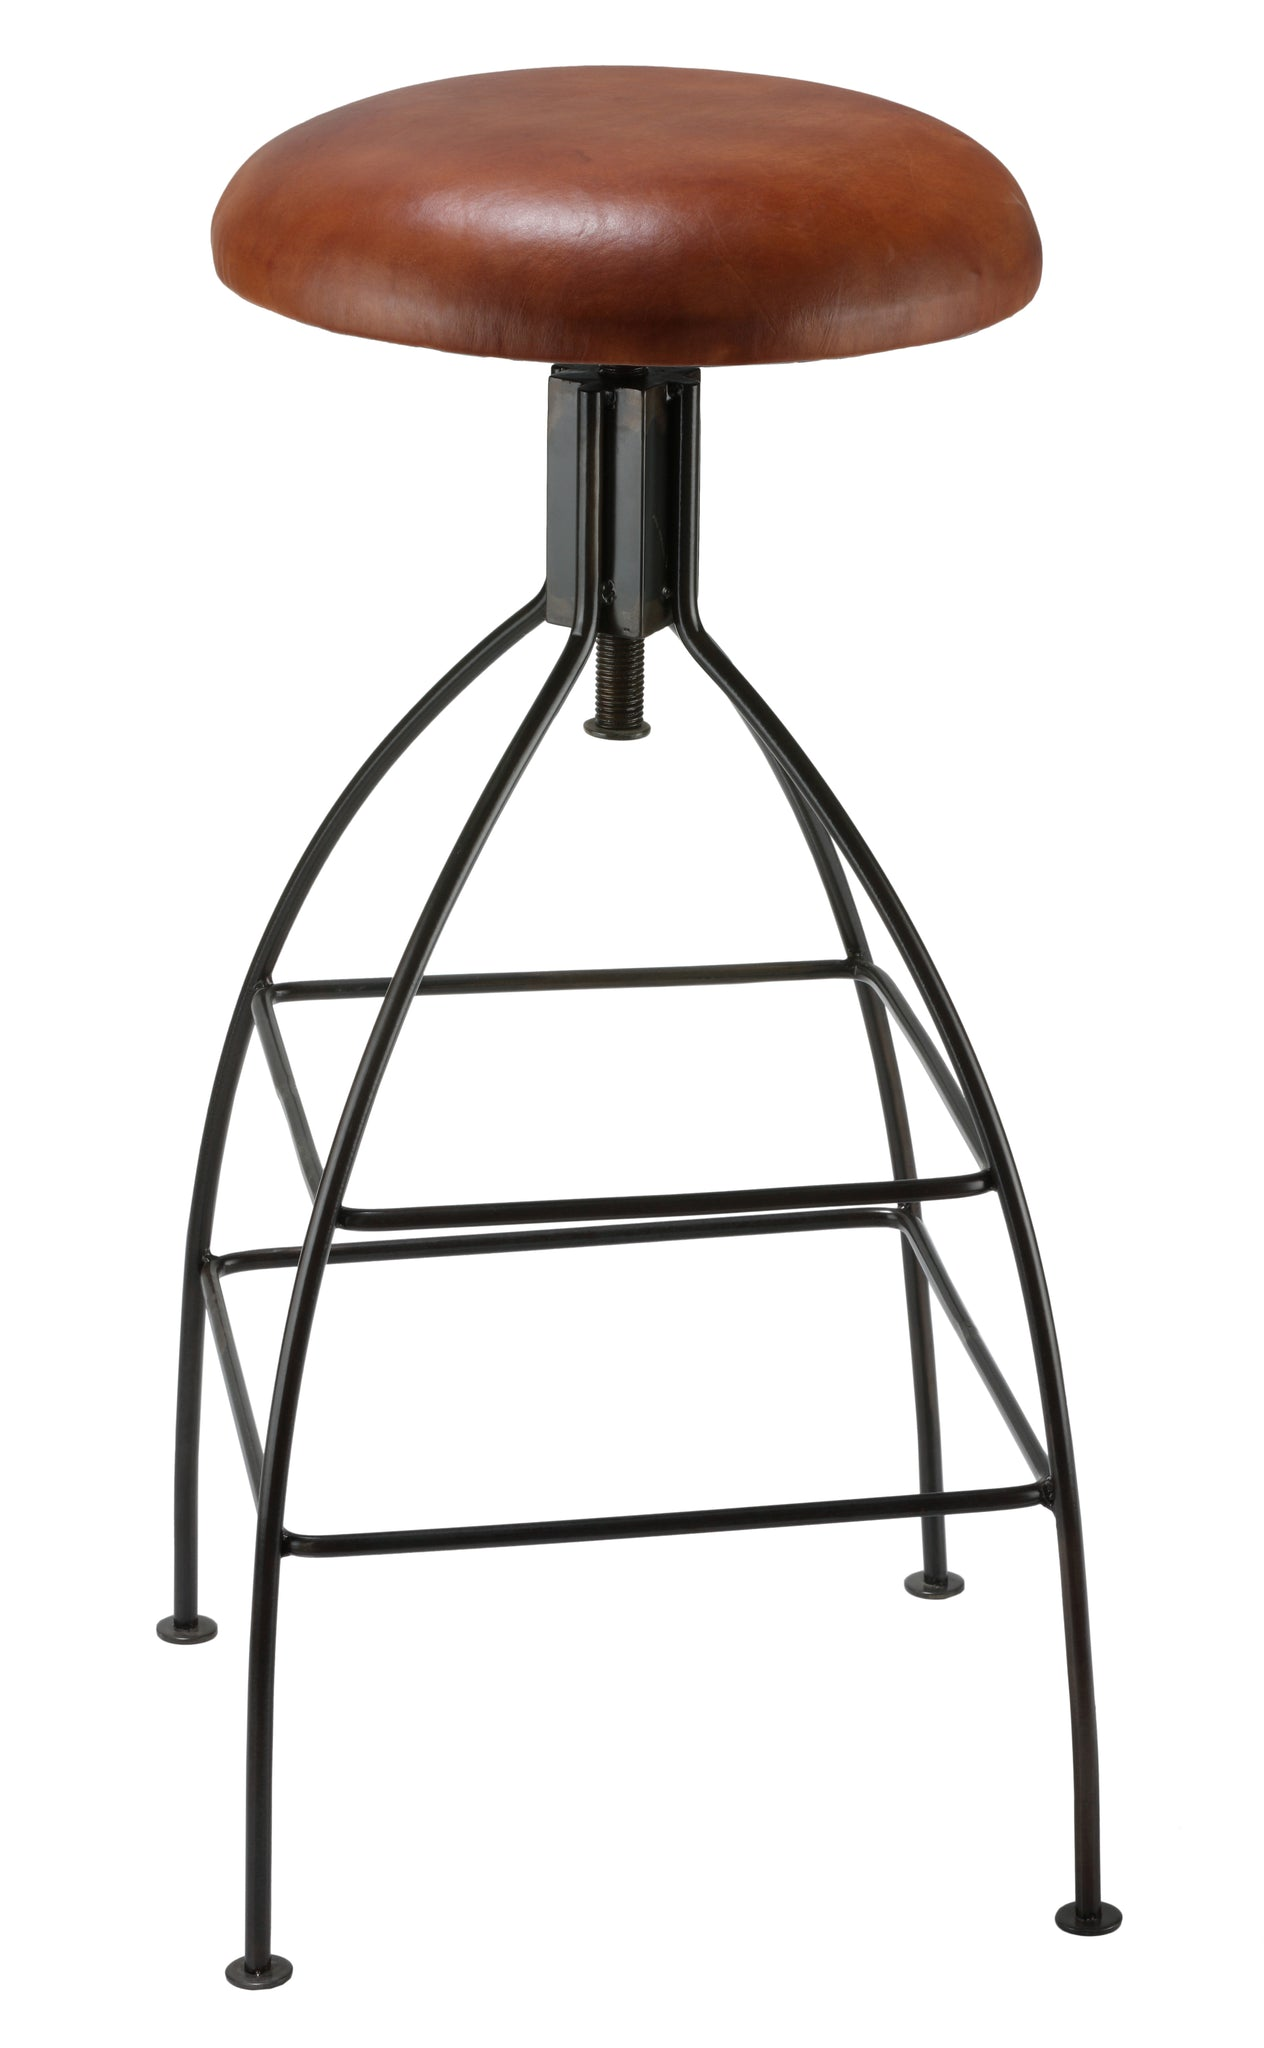 Bare Decor Pinot Counter Stool Black Metal Frame with Brown Genuine Leather Seat